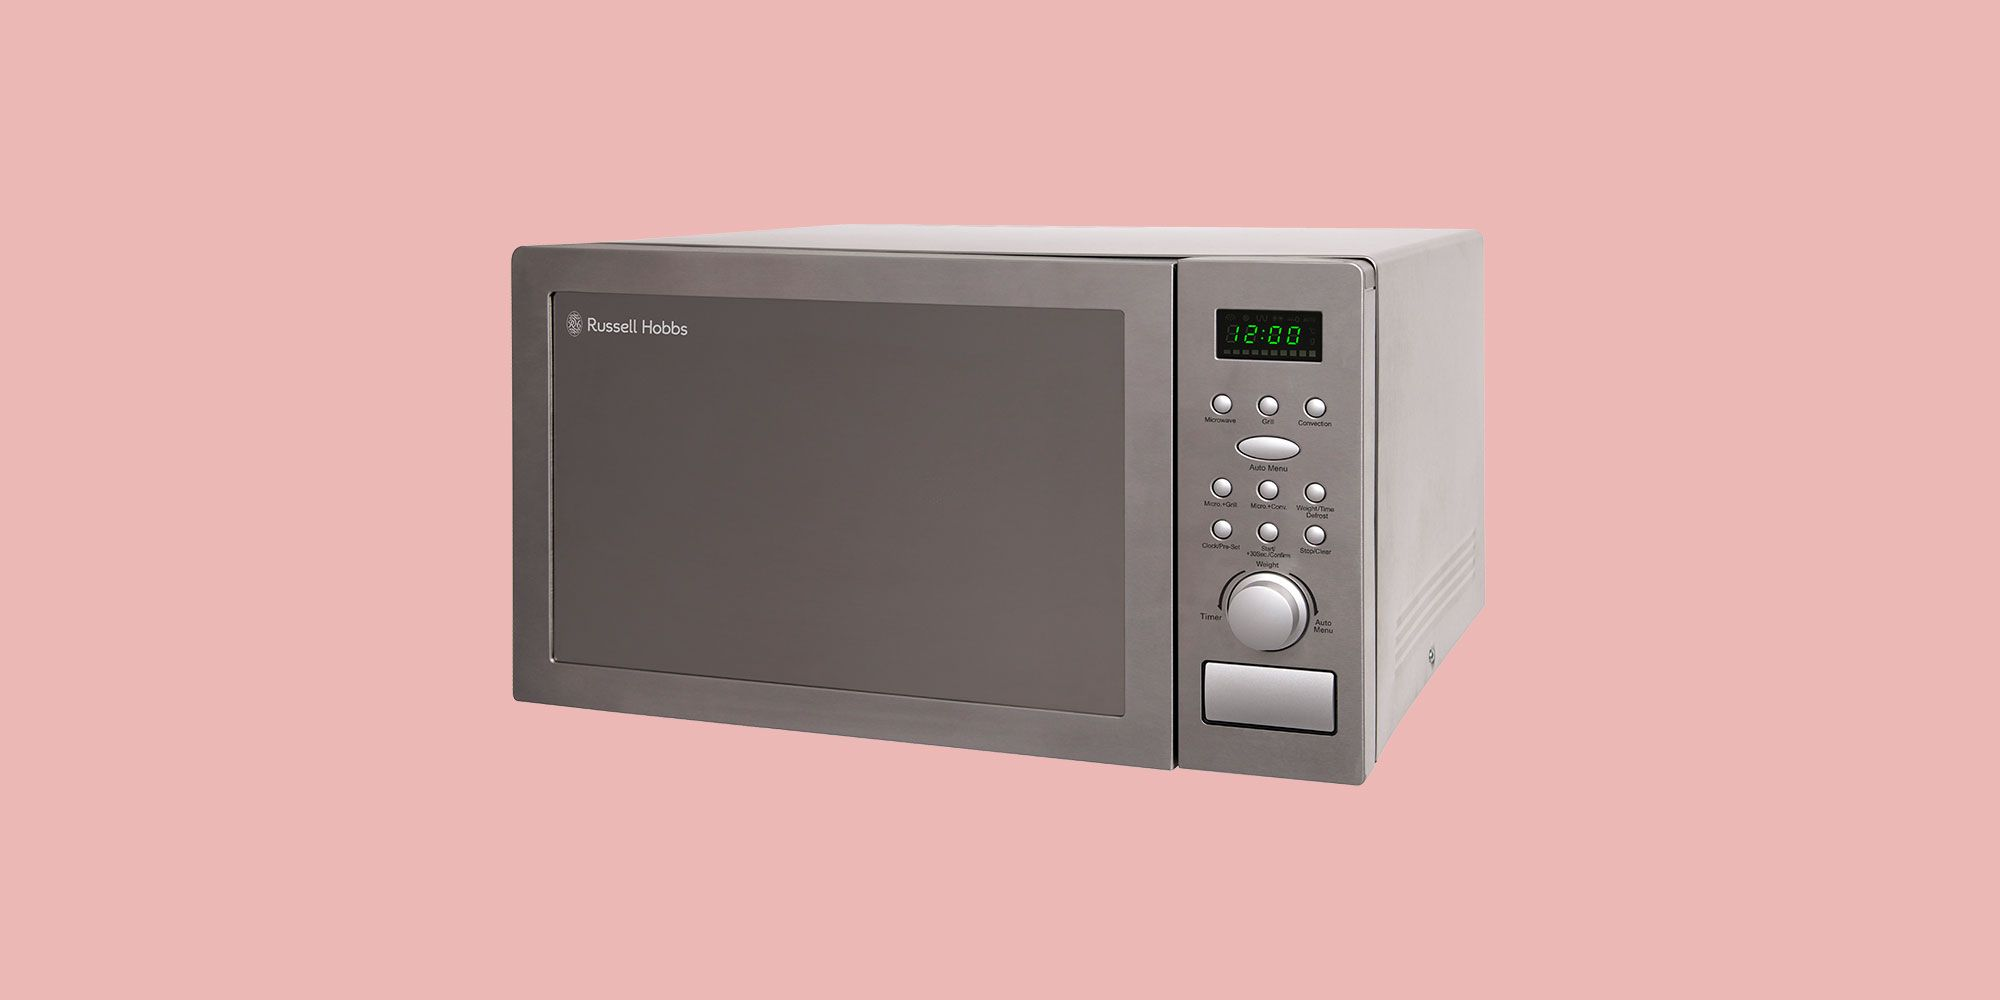 Russell Hobbs Combination Convection